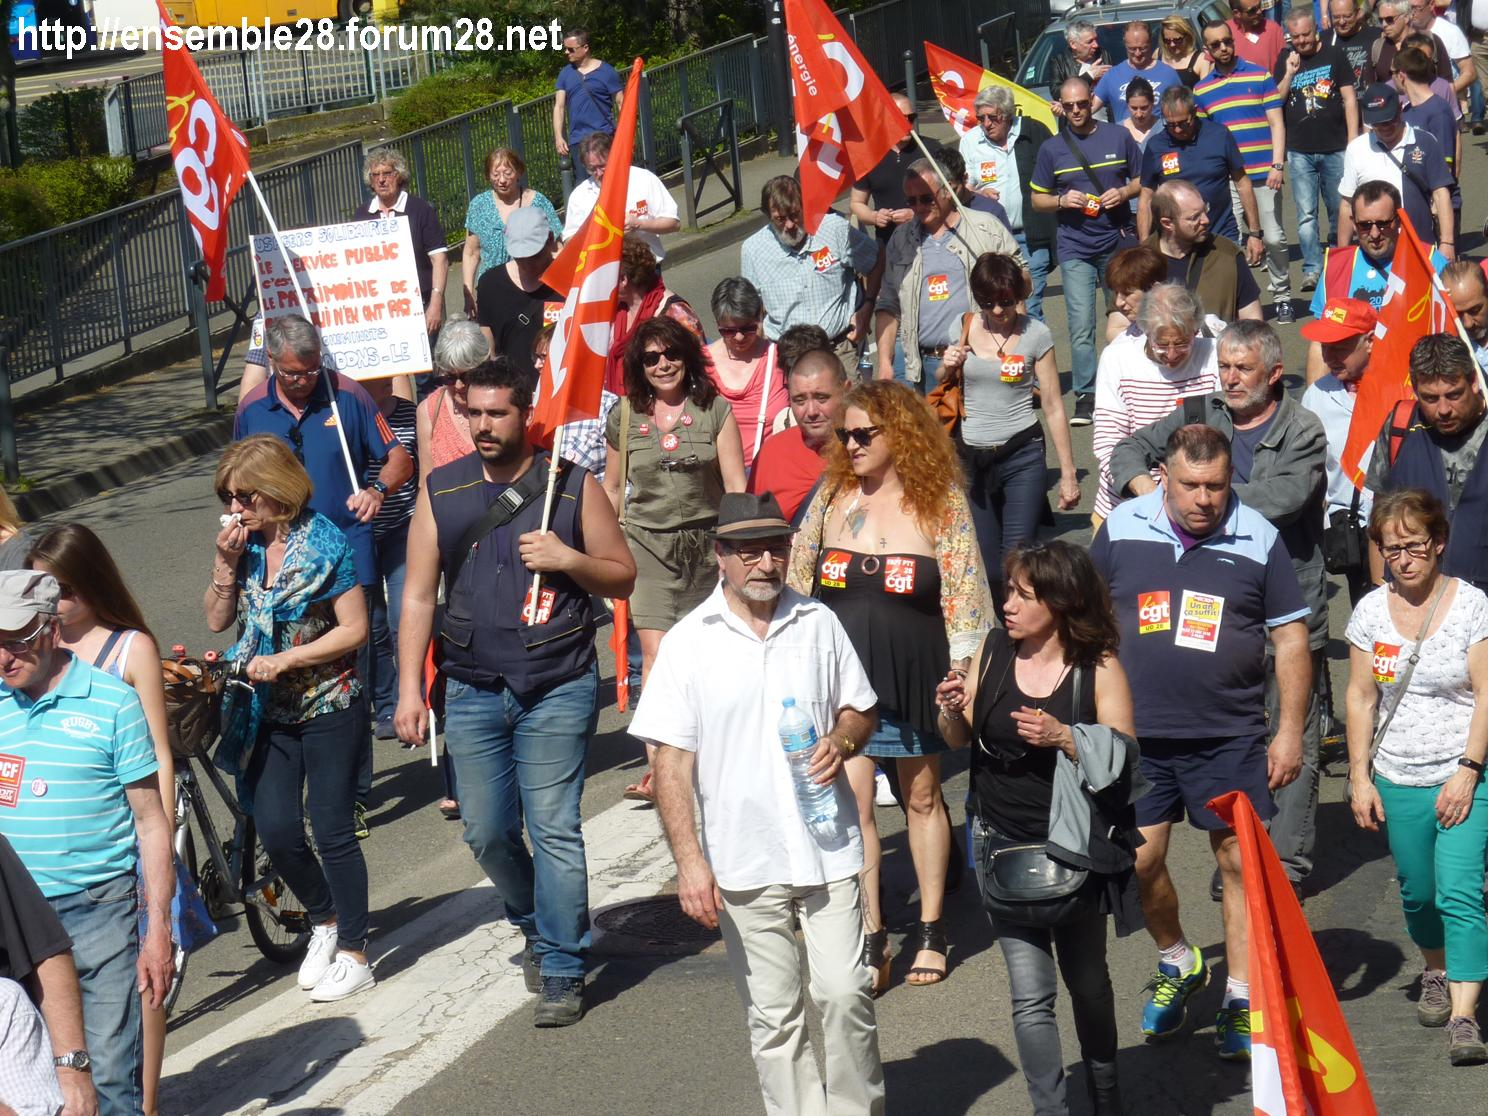 19-04-2018 Chartres Manifestation Interprofessionnelle CGT Solidaires SNES-FSU n°13